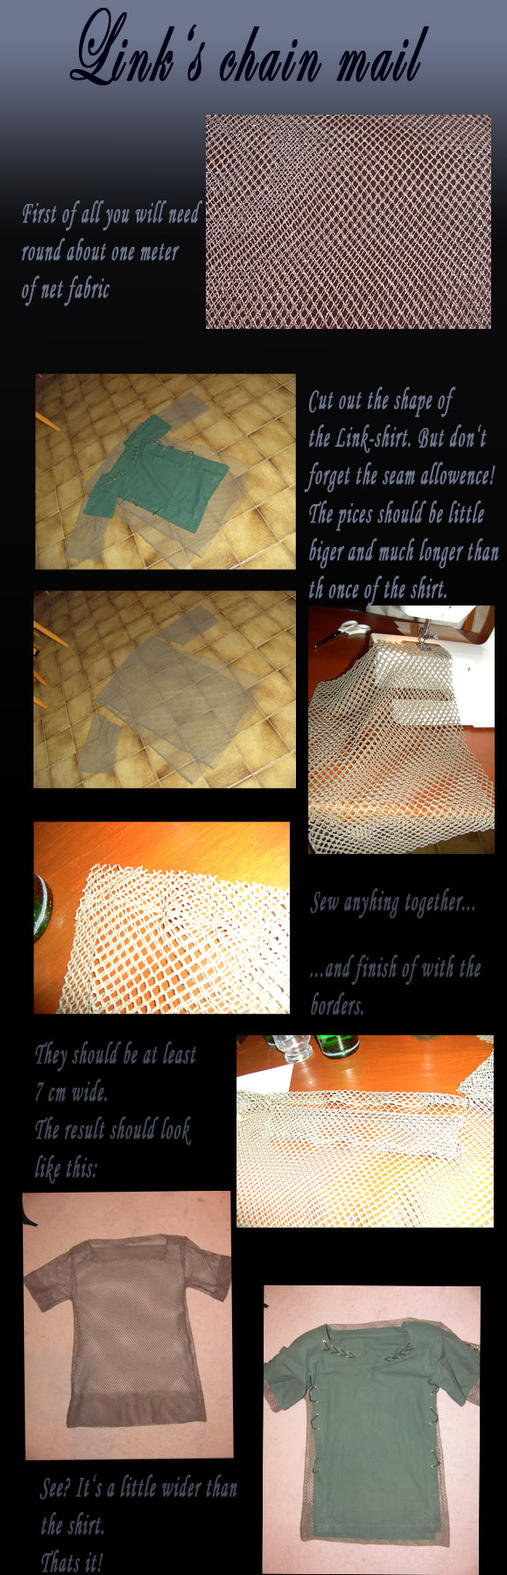 How to make Link's chain mail by Eressea-sama